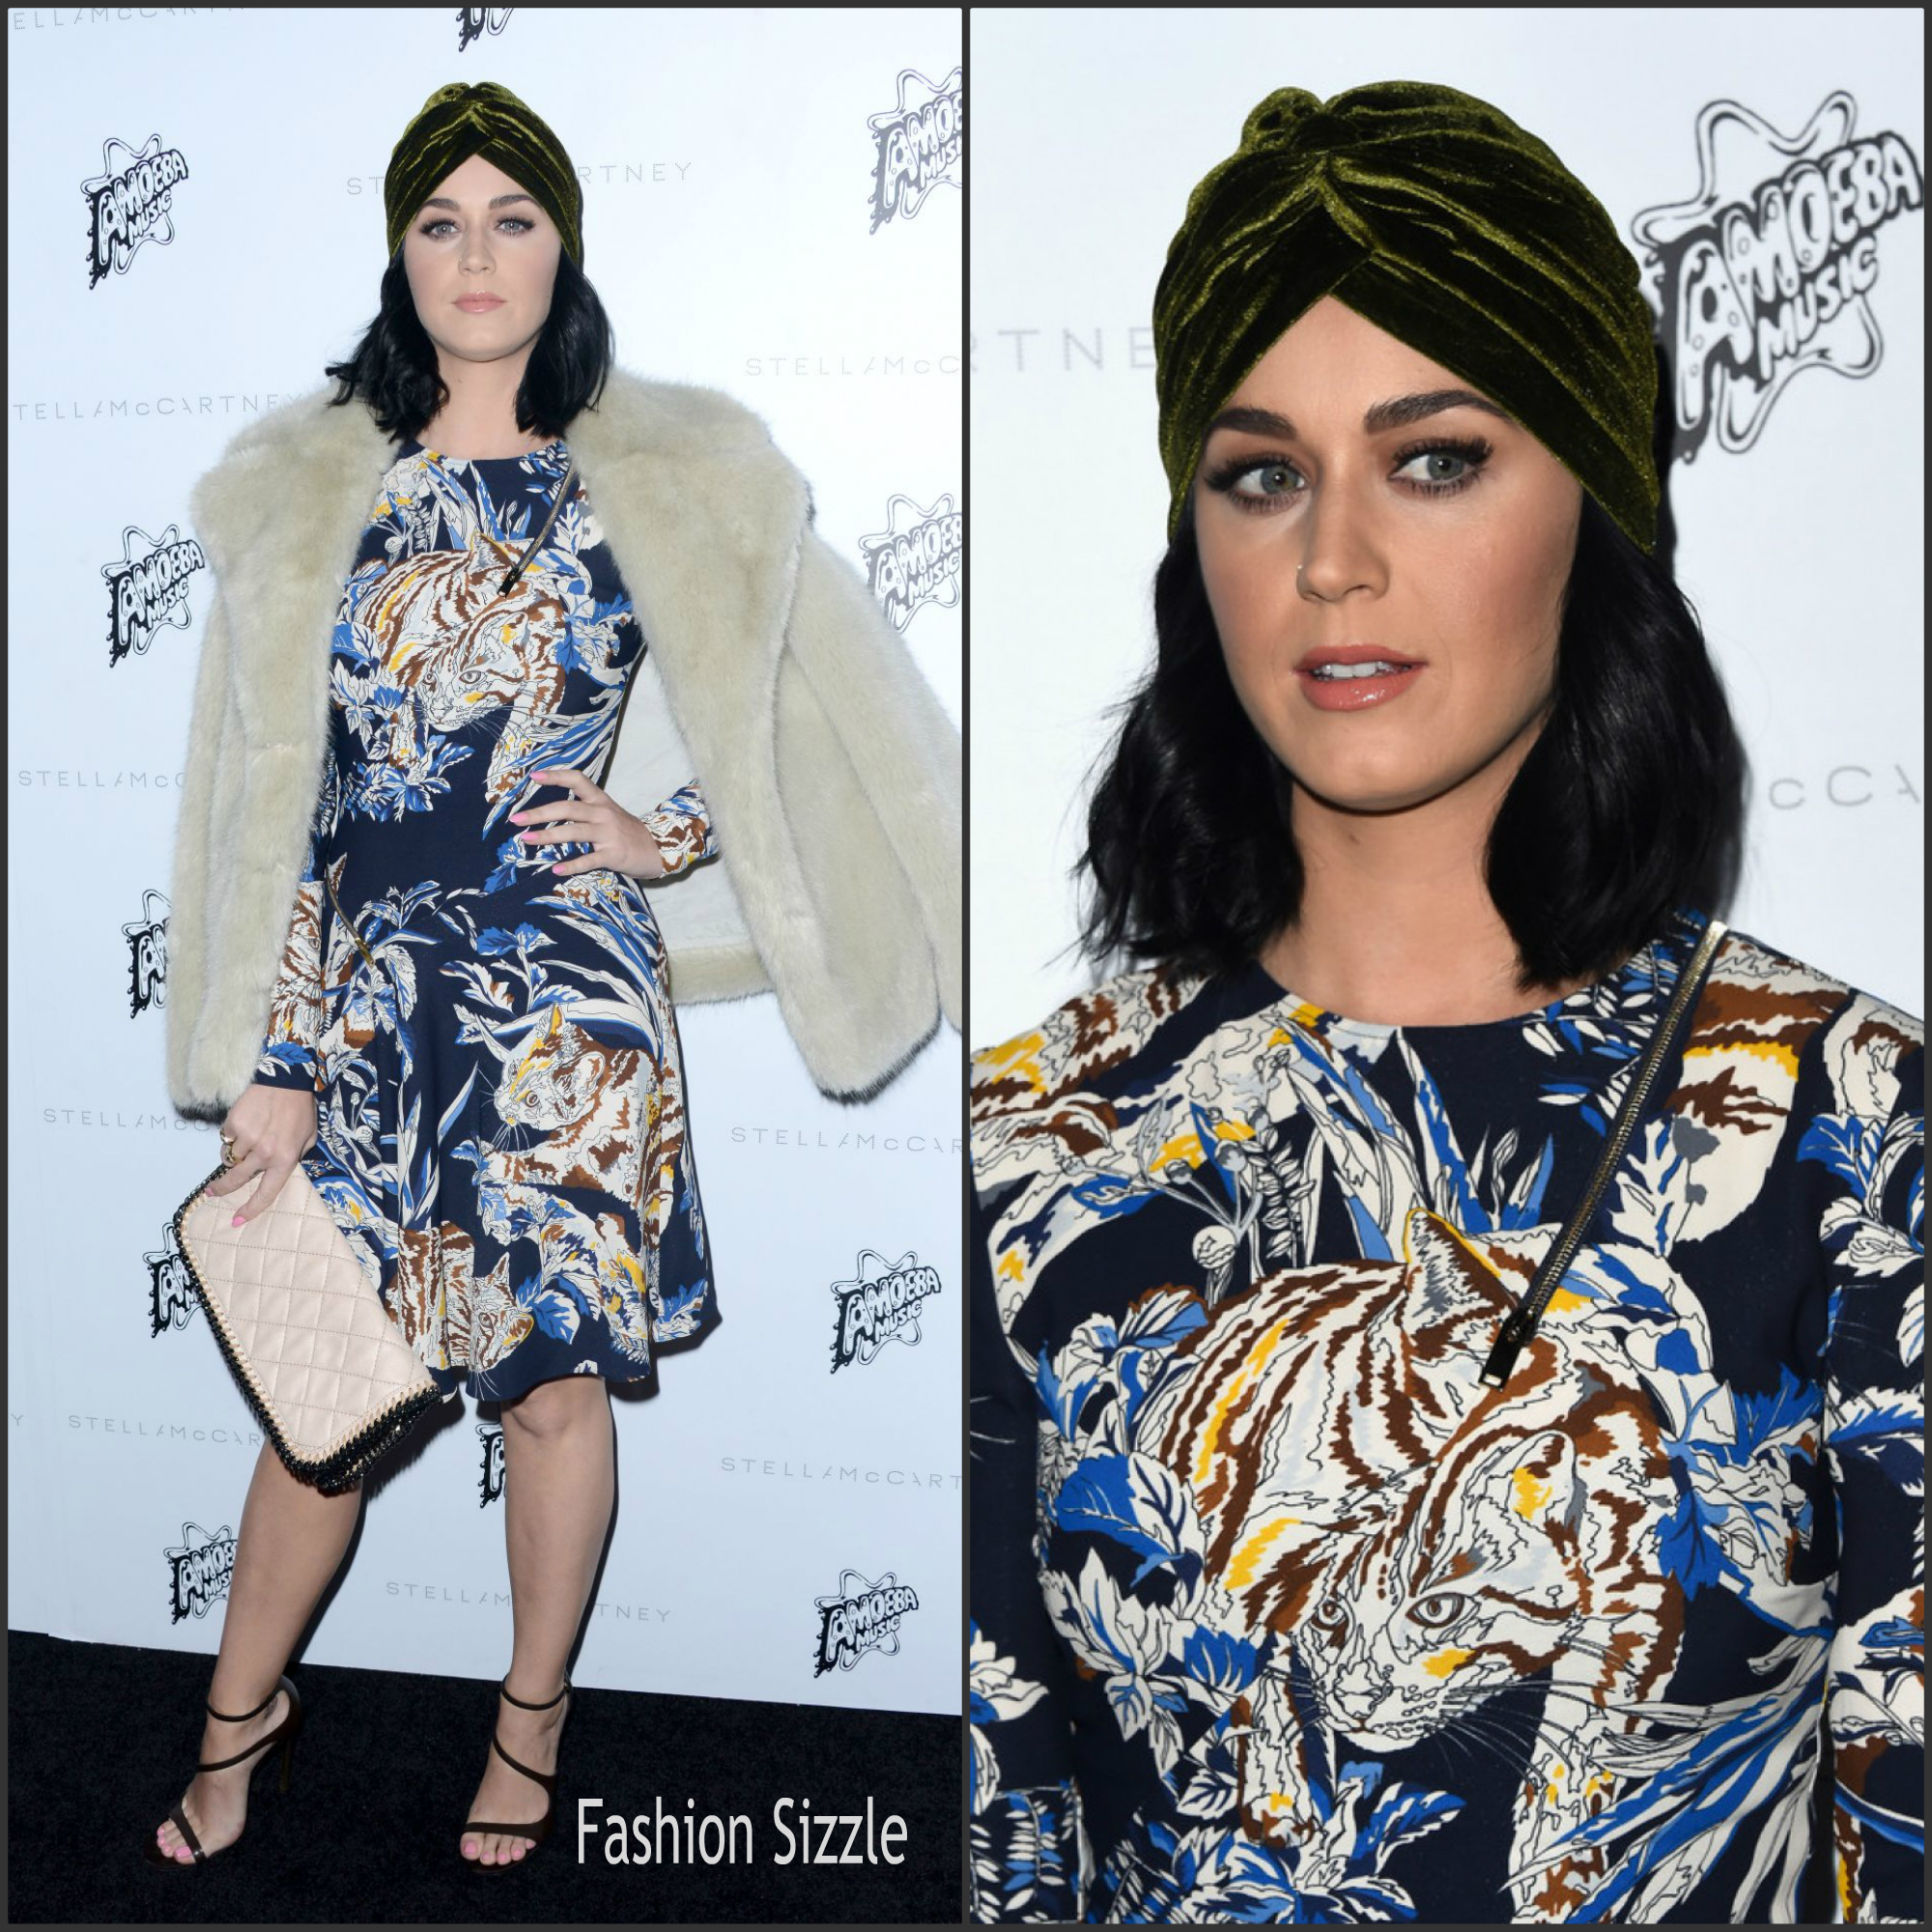 katy-perry-in-stella-mccartney-stella-mccartney-autumn-2016-presentation (1)